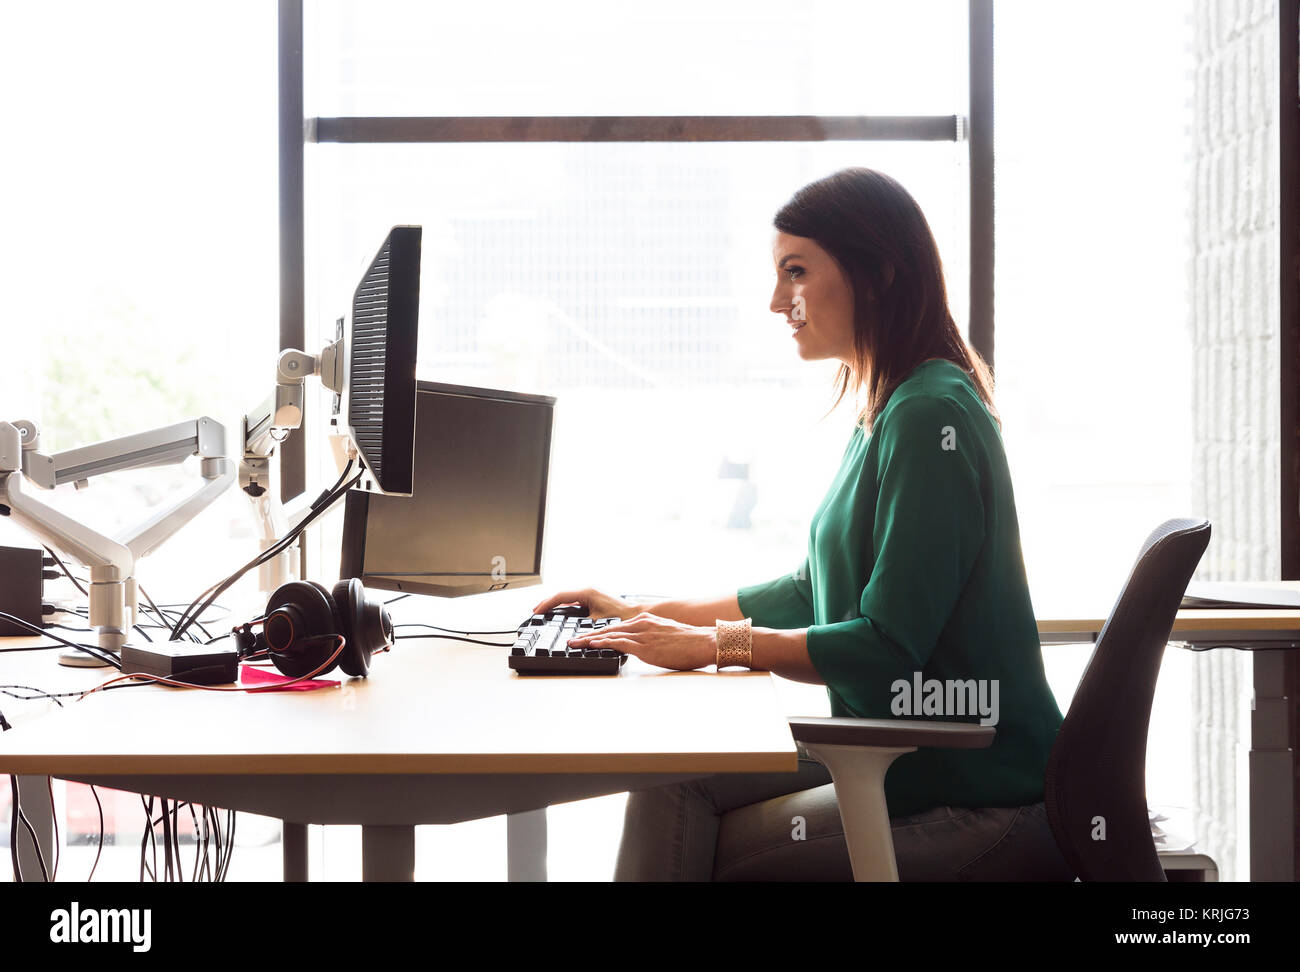 Caucasian woman using computer in office - Stock Image